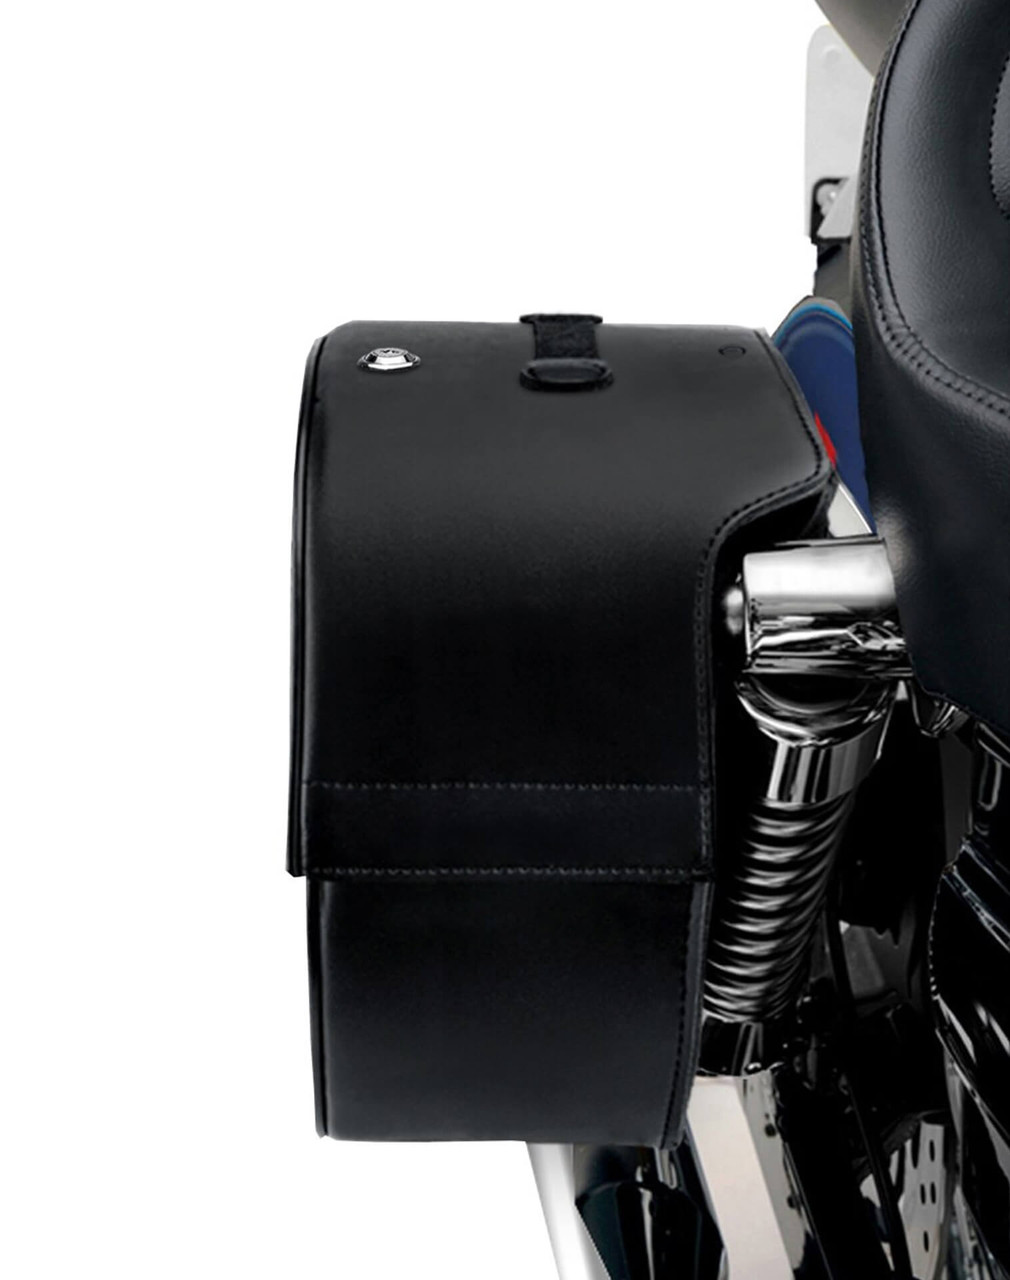 Viking Spear Shock Cutout Large Motorcycle Saddlebags For Harley Sportster Iron 1200 Shock cutout view